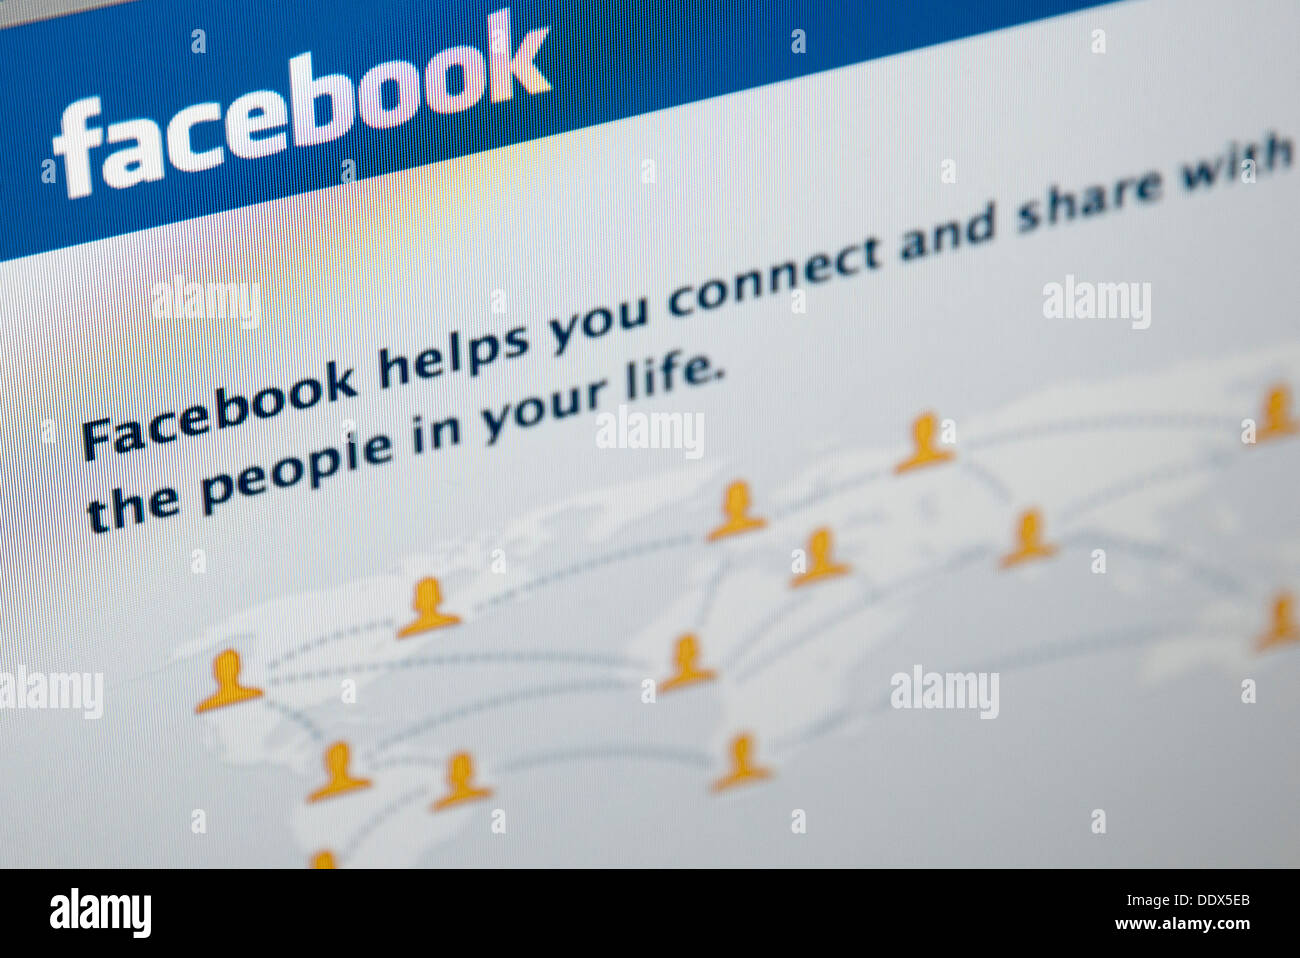 Facebook web page - Stock Image